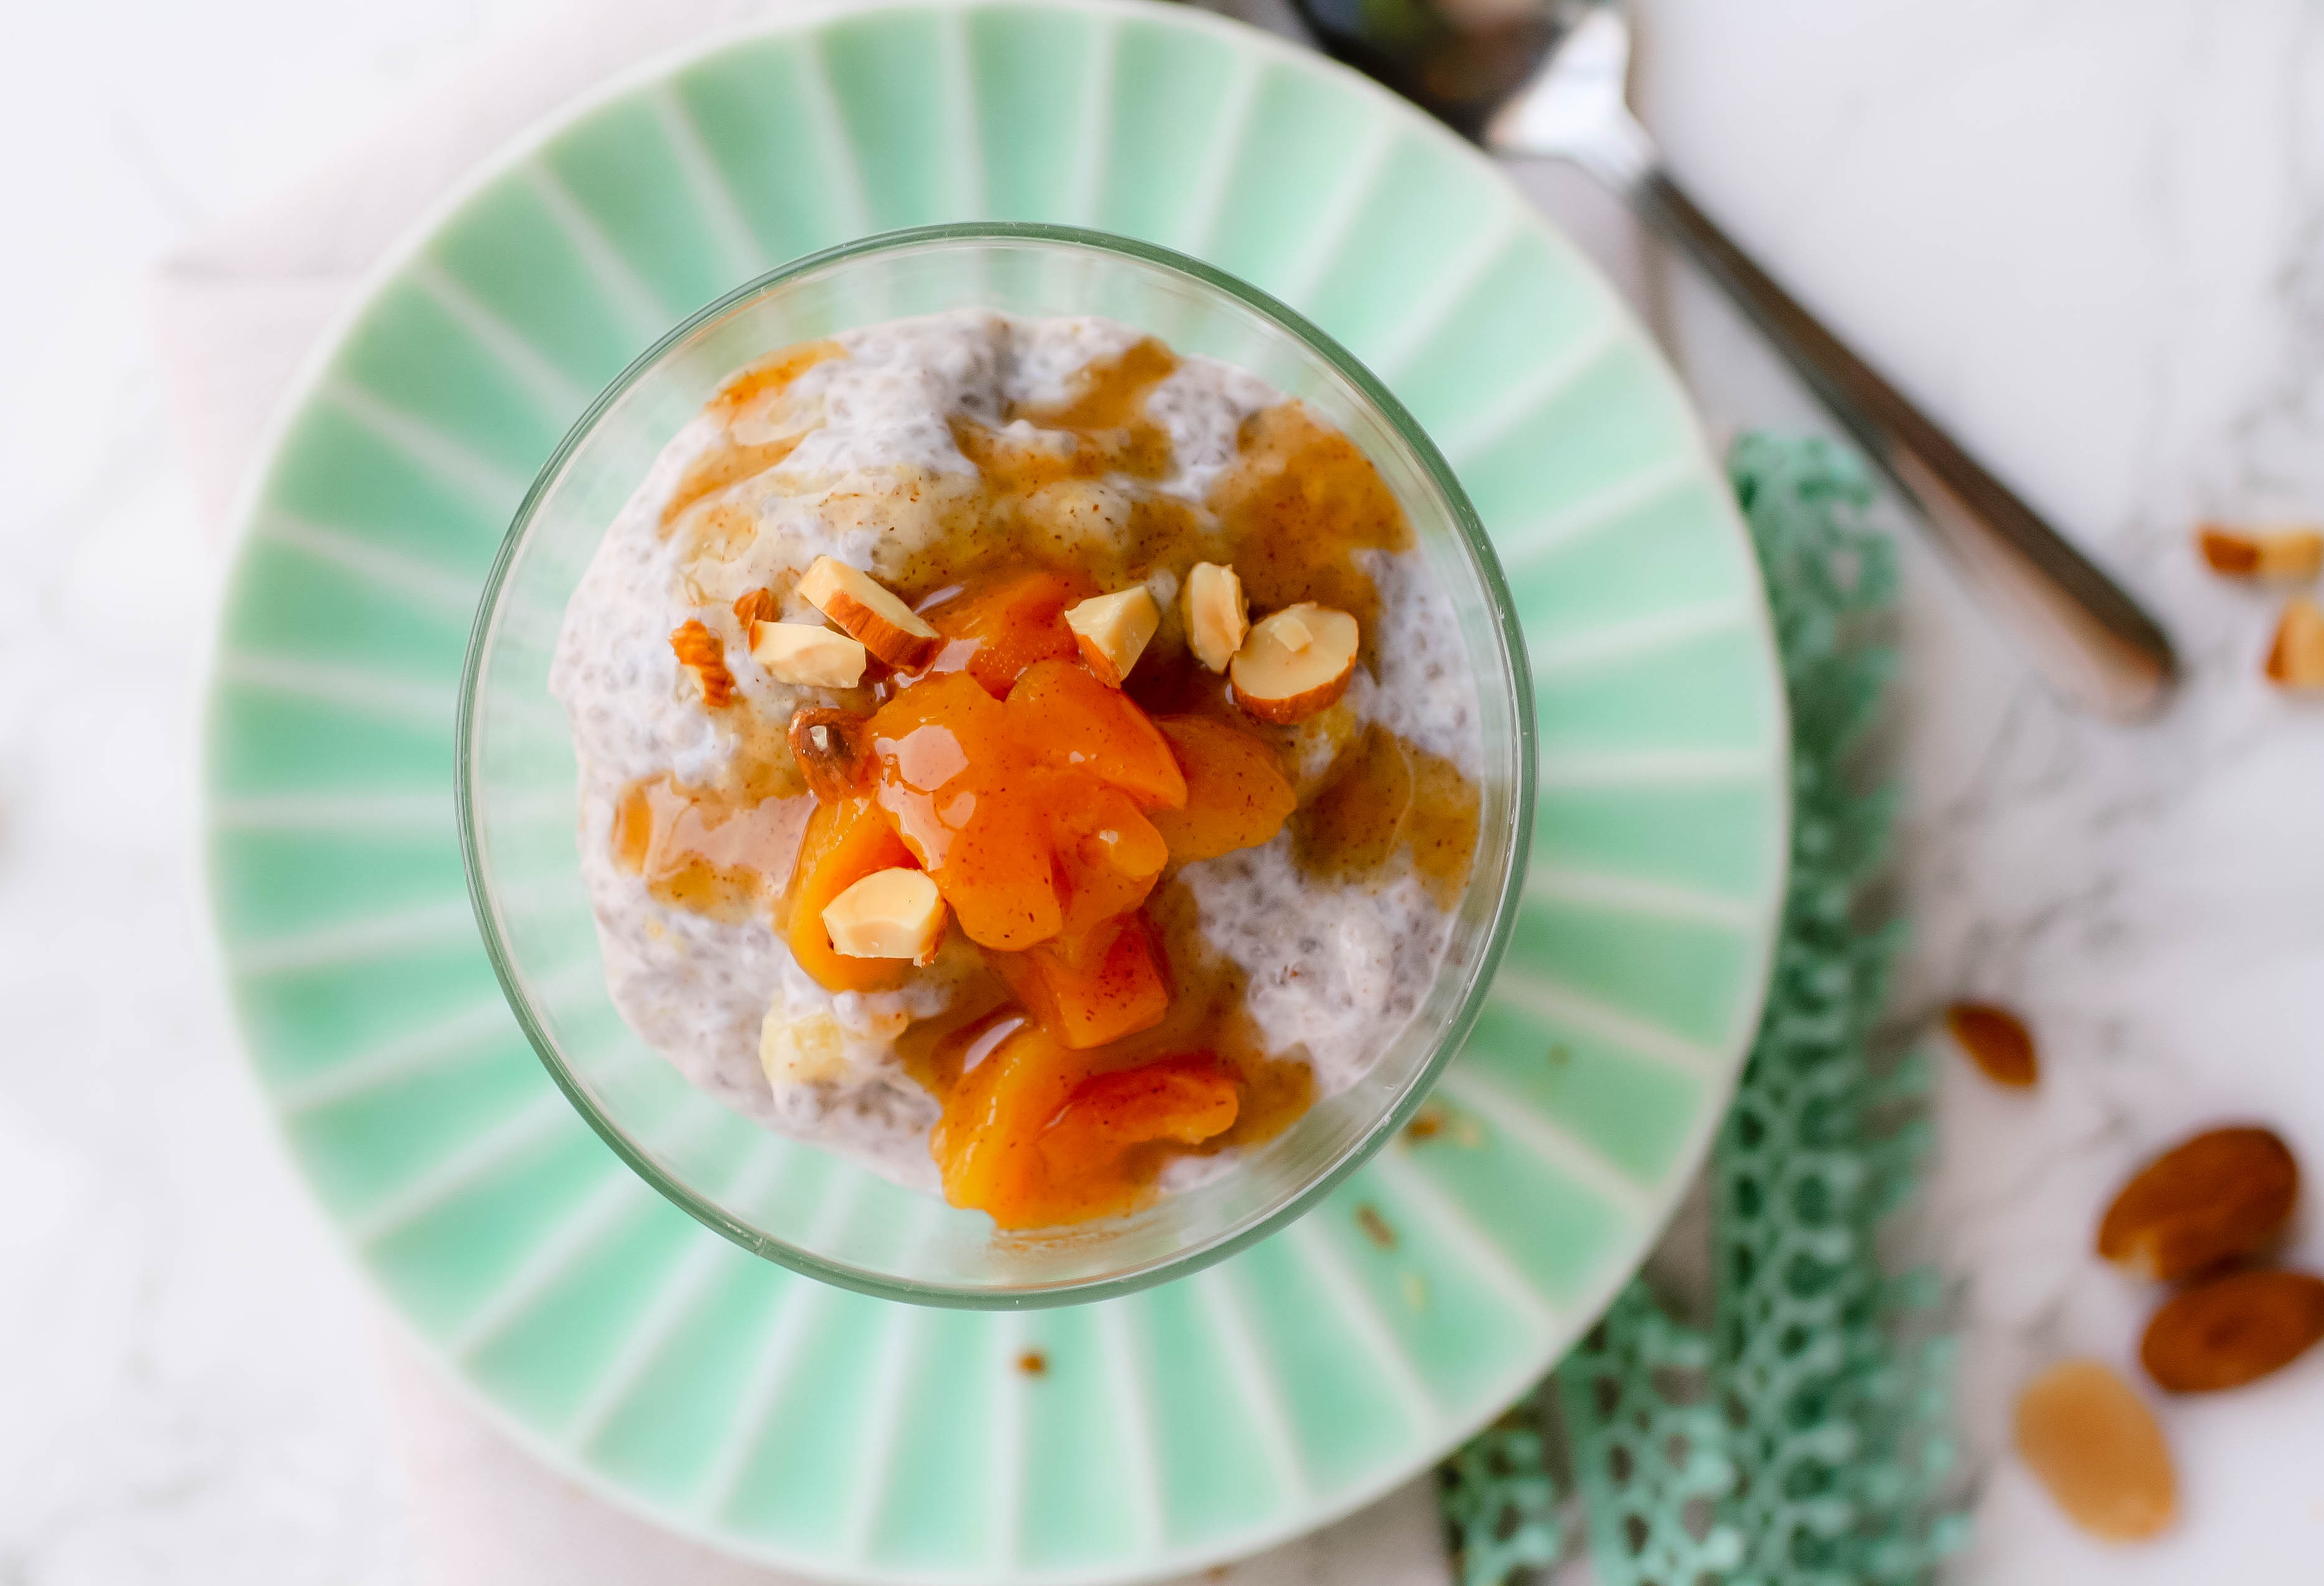 Almond-Apricot Breakfast Chia Pudding is an easy, make-ahead meal. Almond-Apricot Breakfast Chia Pudding is a tasty breakfast option.